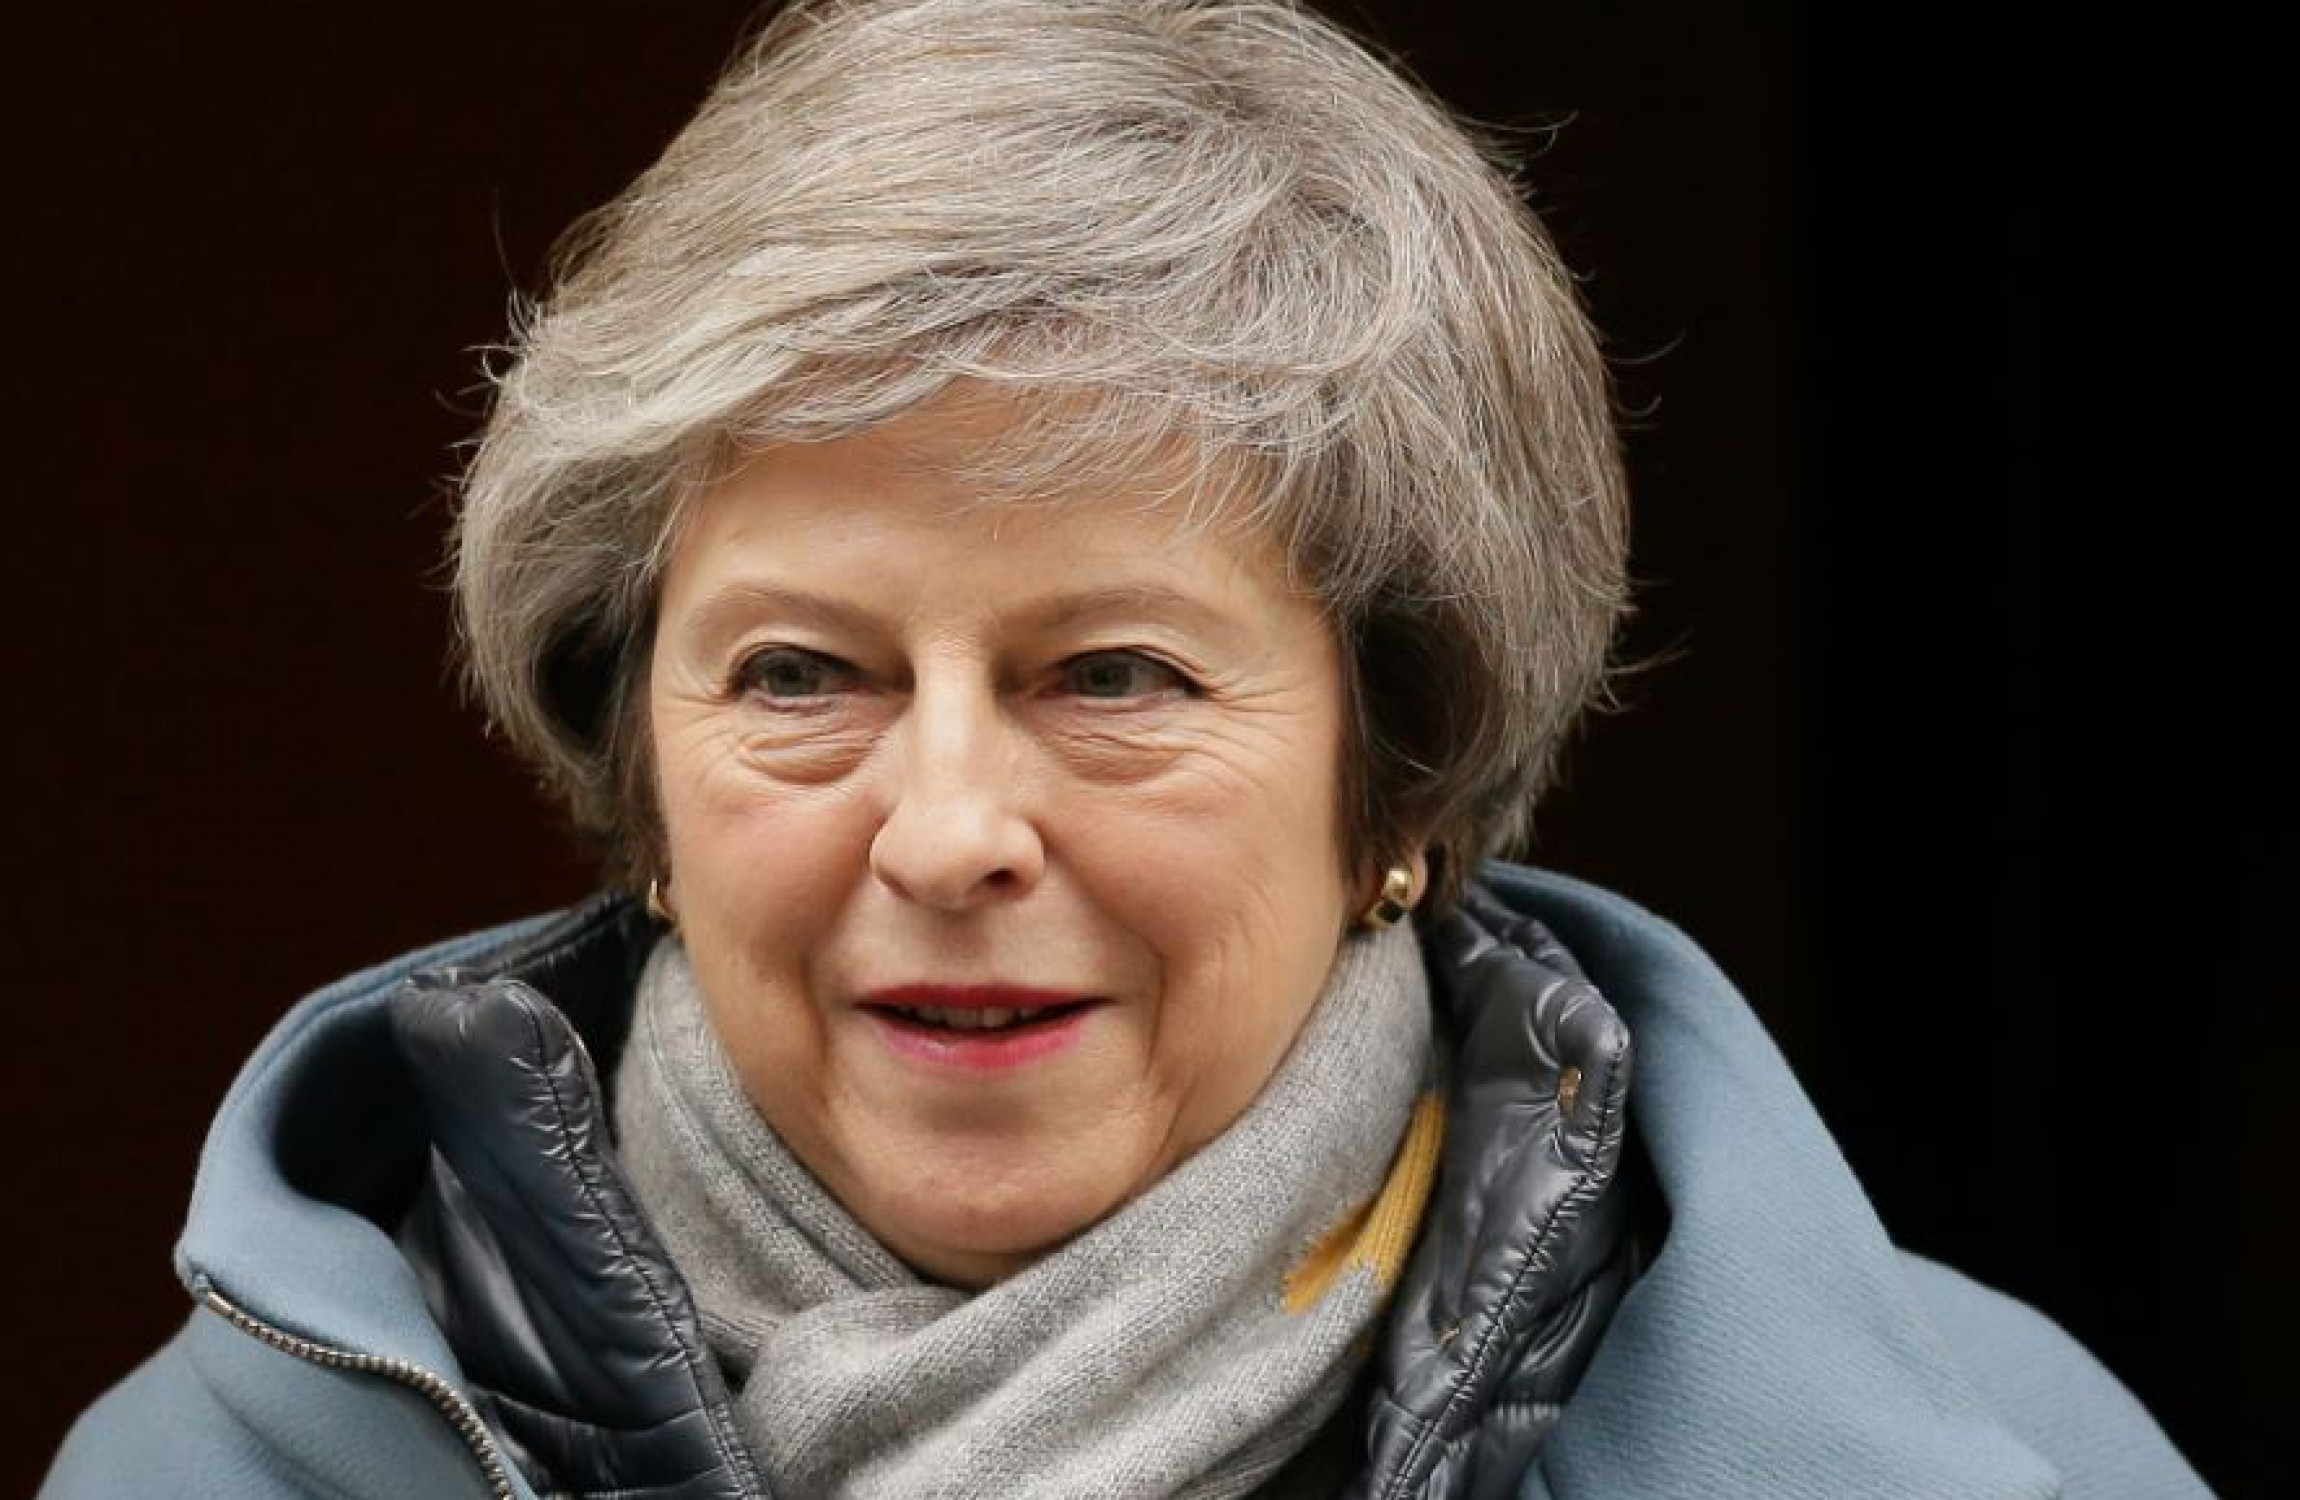 British PM May cautions of 'catastrophe' if Brexit plan rejected